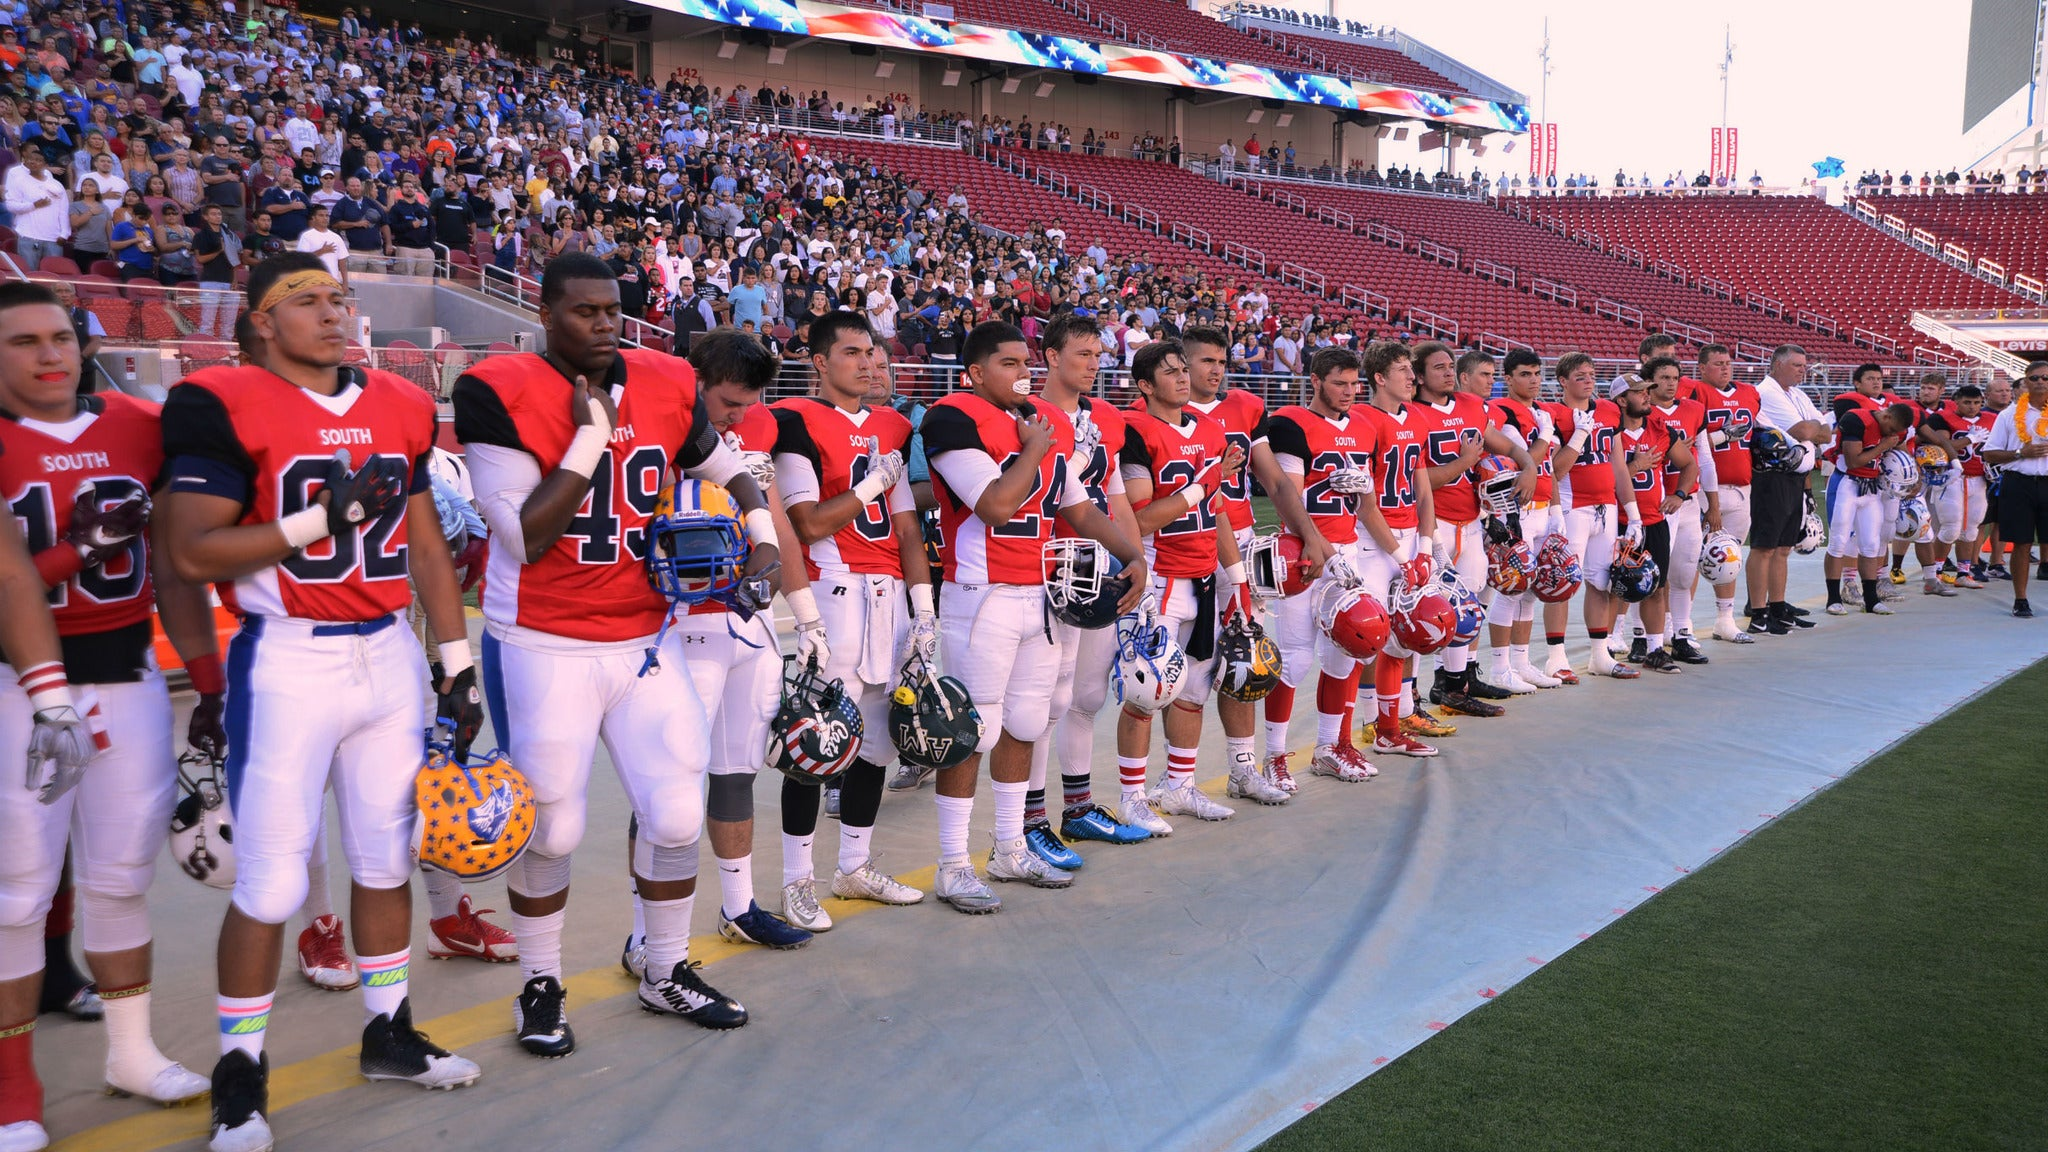 Charlie Wedemeyer Allstar Football Game at Levi's® Stadium